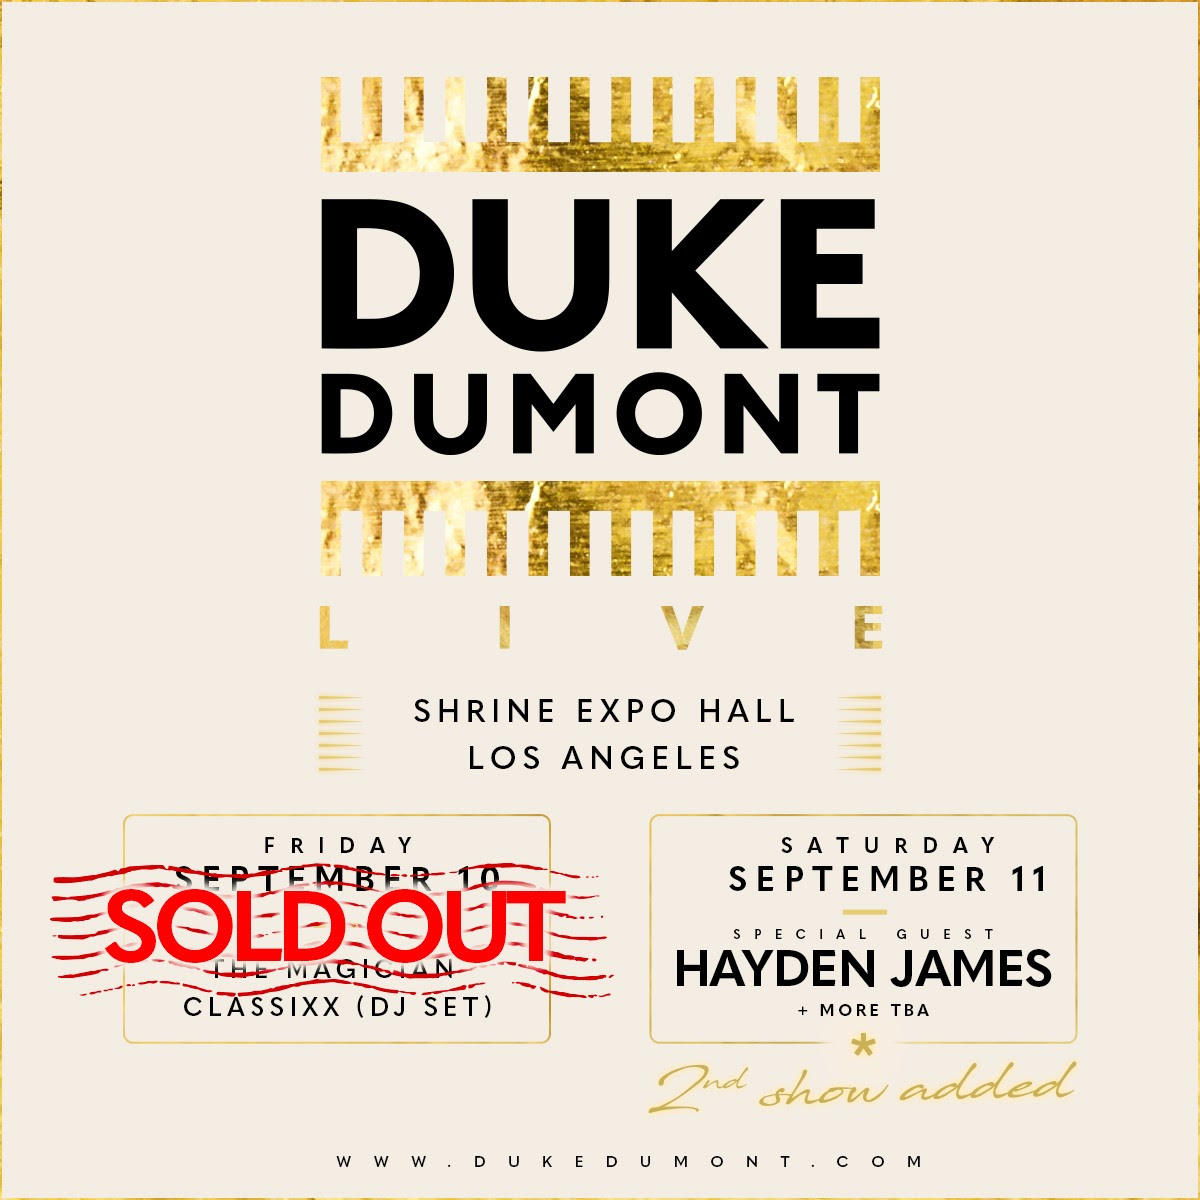 Duke Dumont Announces Return to The Shrine in Los Angeles with Two Headline Shows